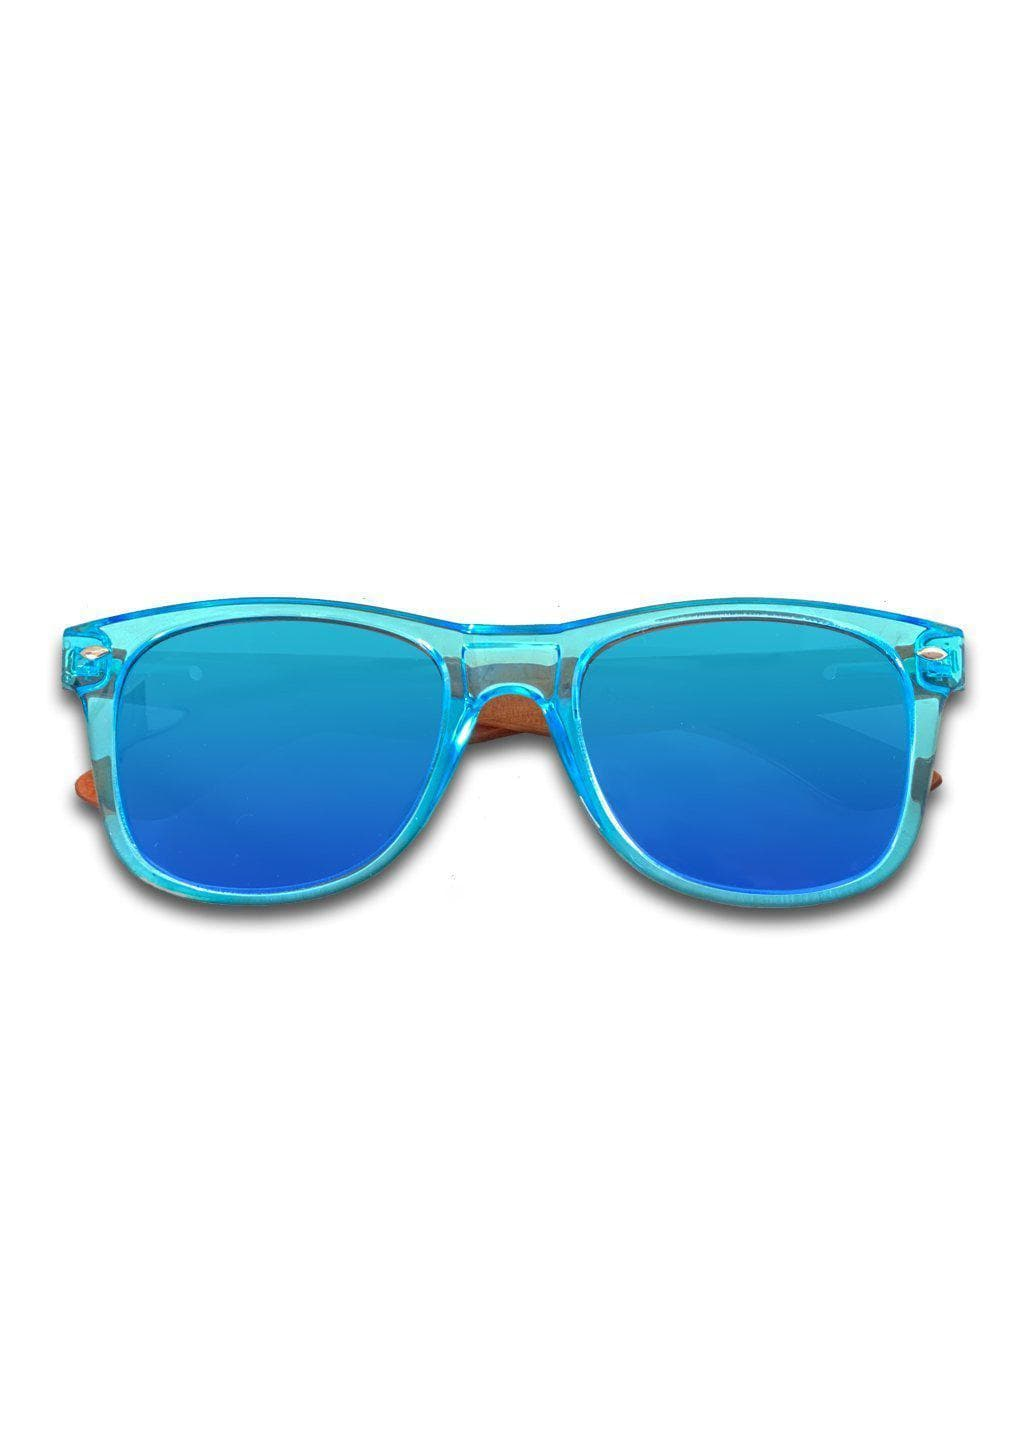 Eyewood Wayfarer - Sapphire - Transparent blue frame with blue mirror lenses and temples made of wood.